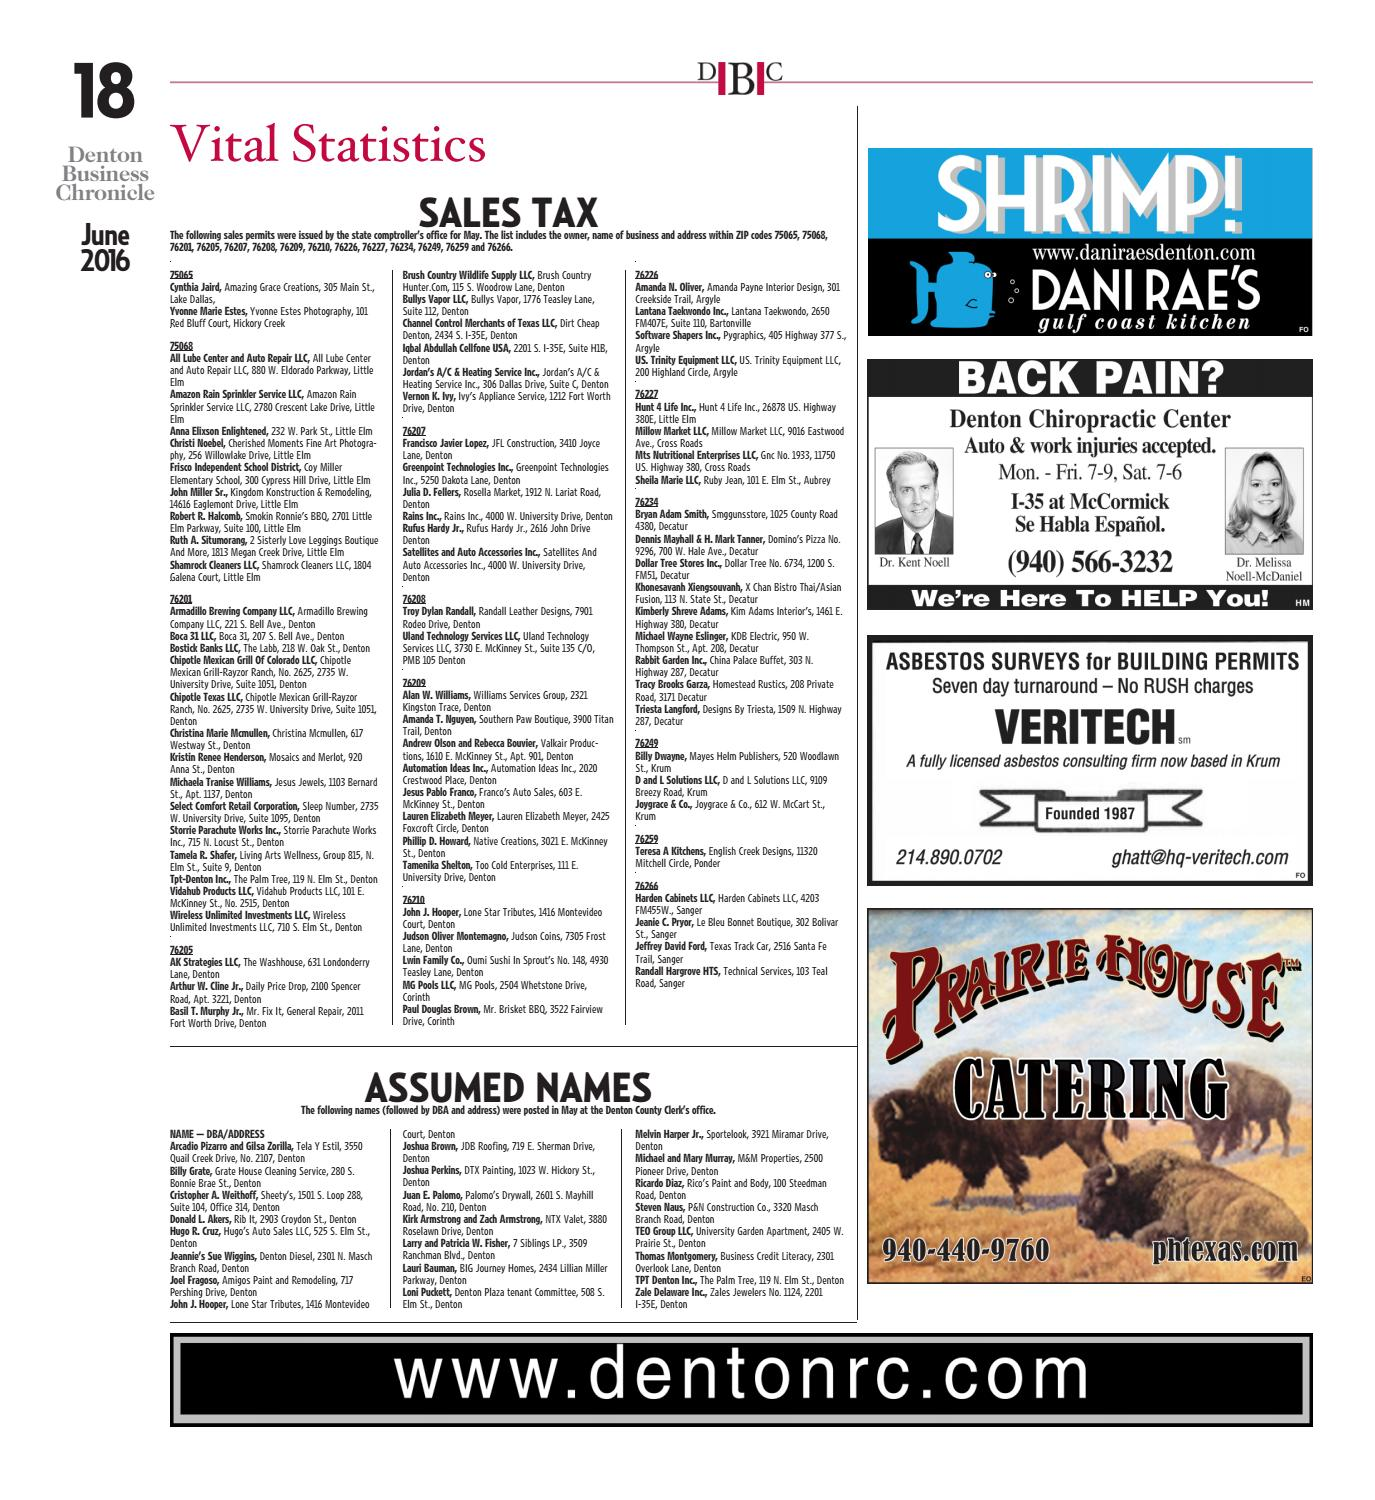 June Denton Business Chronicle 2016 by Larry McBride - issuu